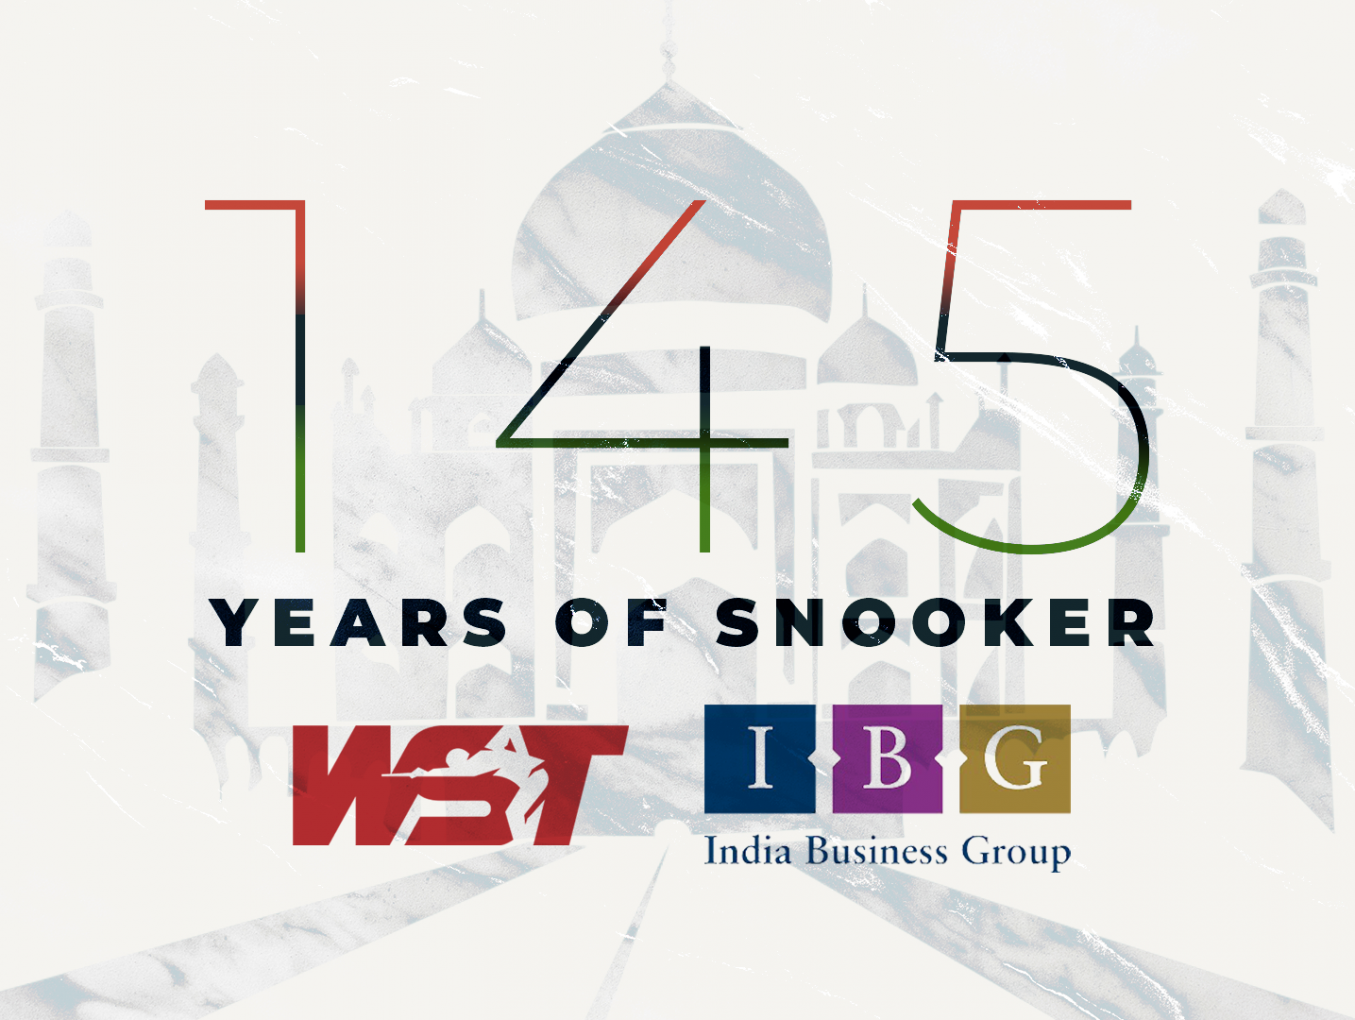 WST to Celebrate 145th Anniversary of Snooker's Birth in India